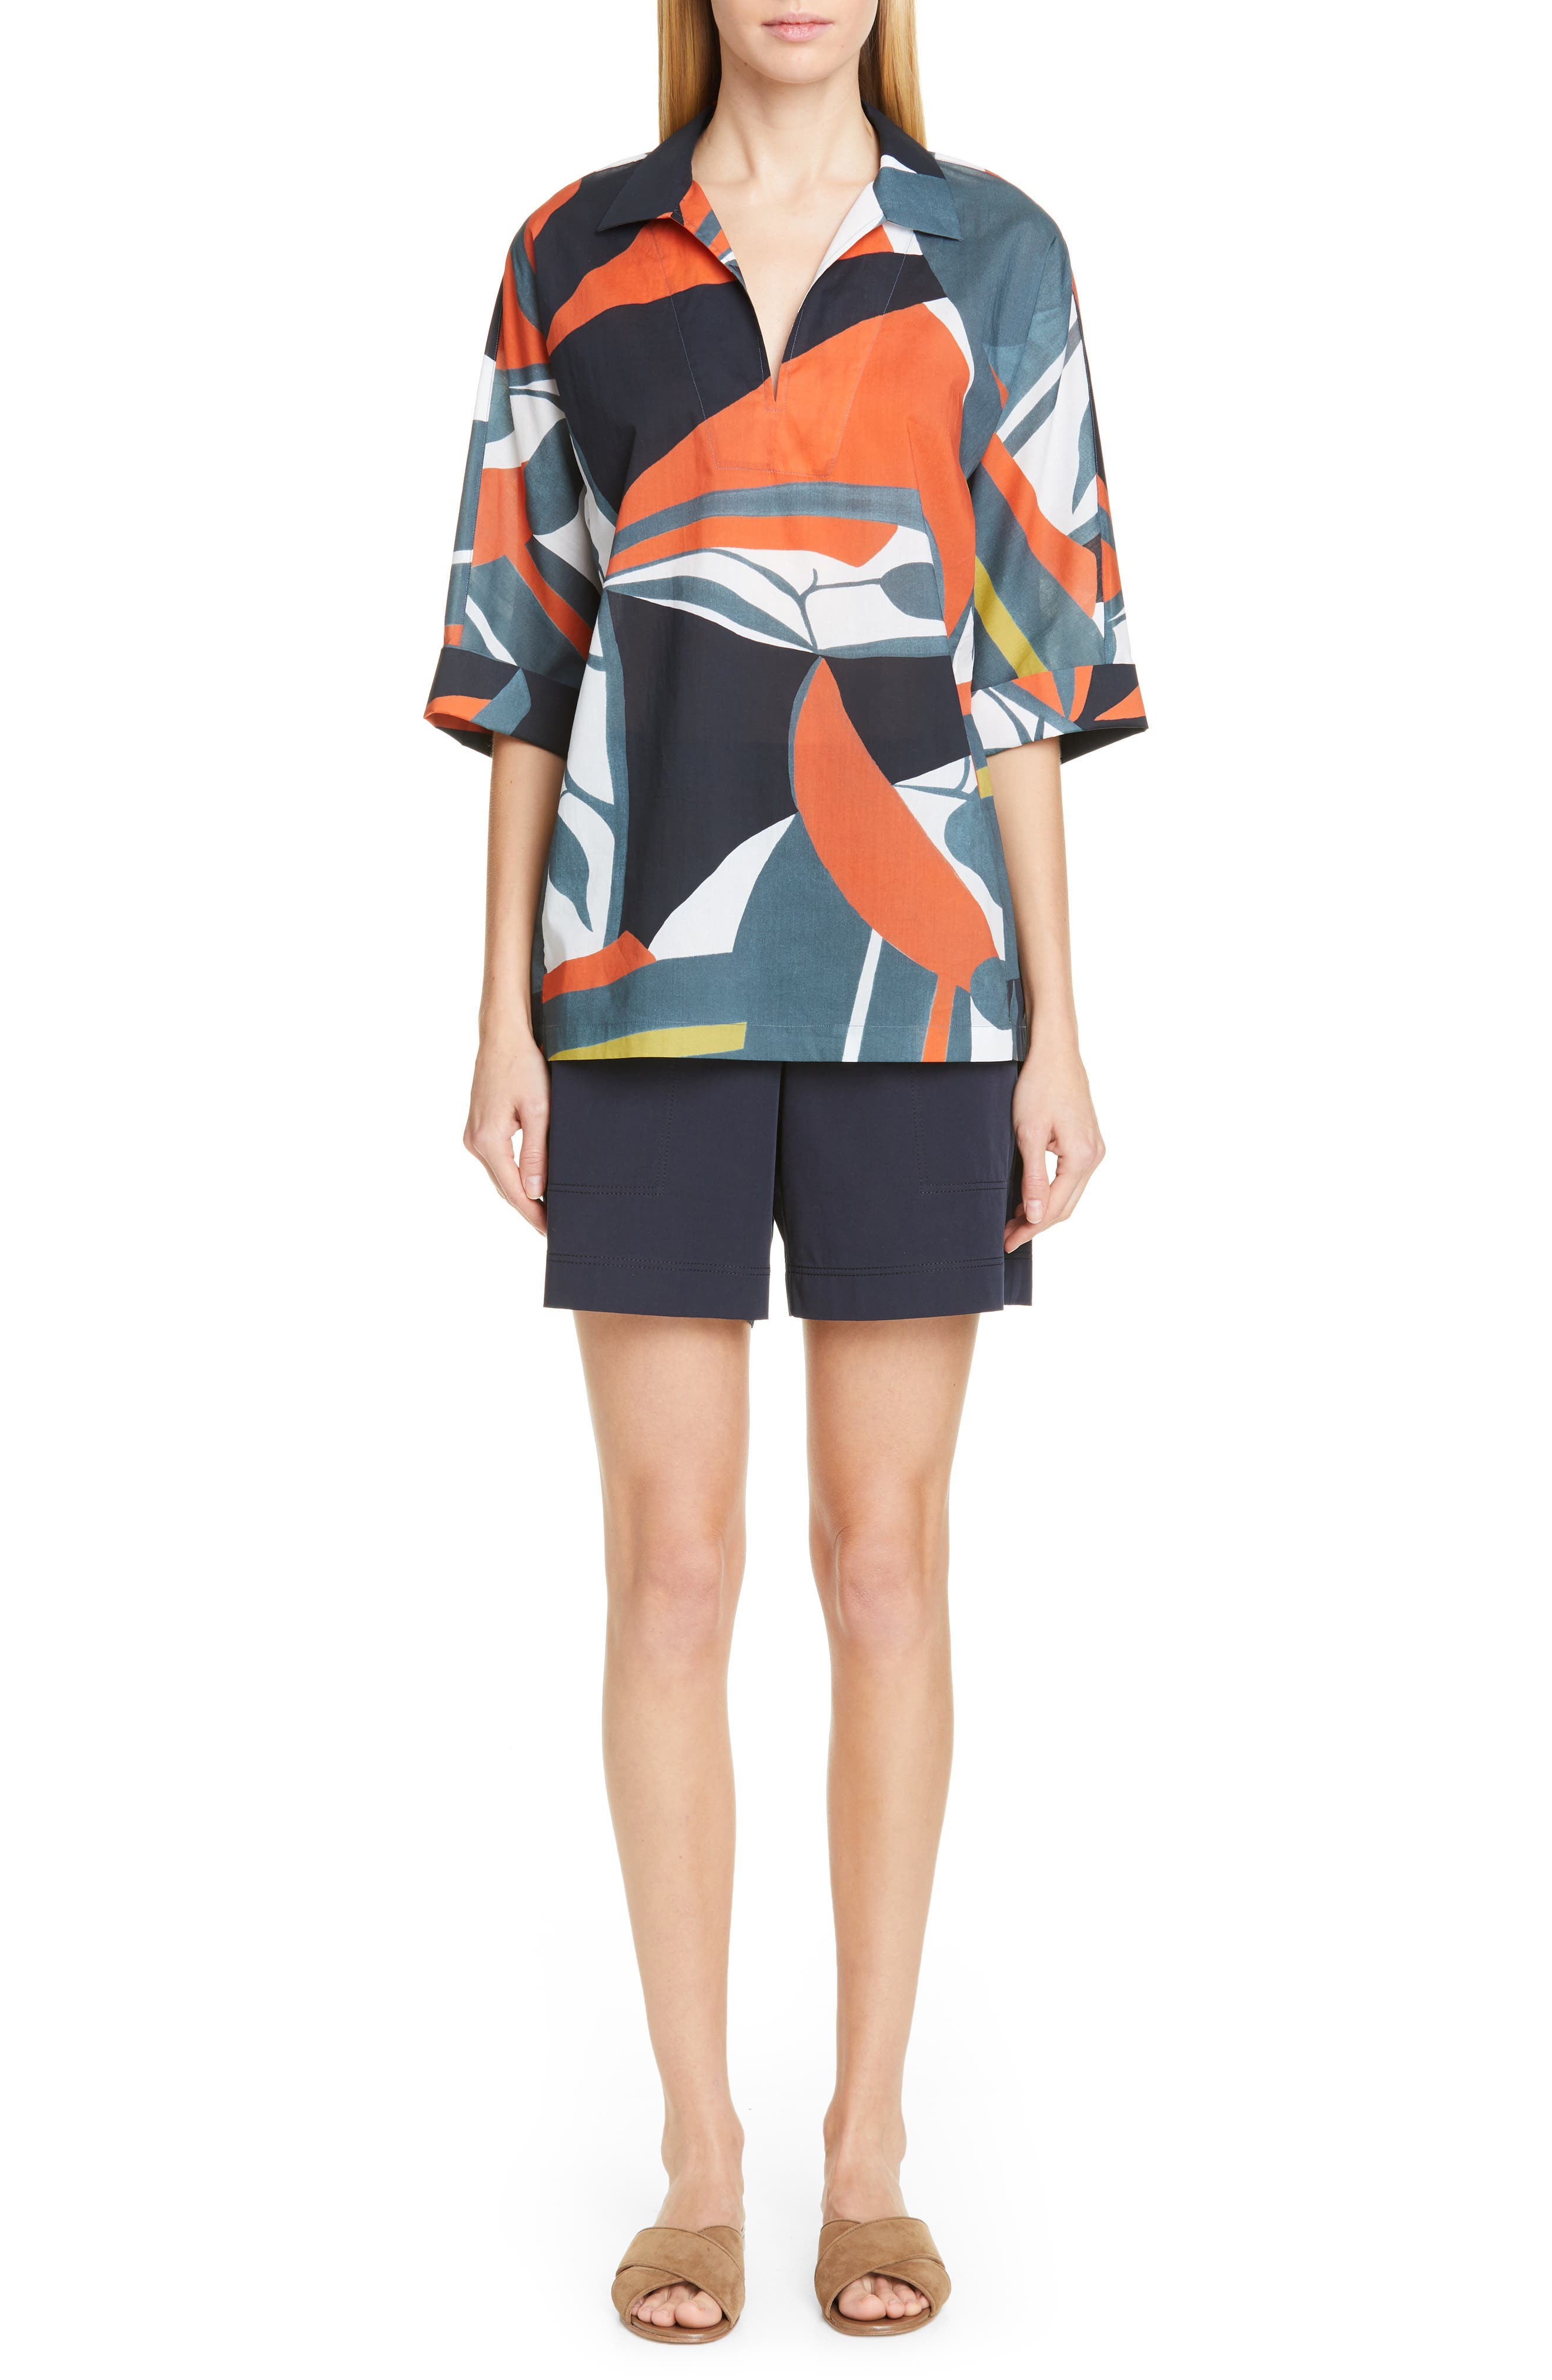 LAFAYETTE 148 NEW YORK, Nicole Artisan Abstract Print Top, Alternate thumbnail 8, color, ATLANTIS TEAL MULTI